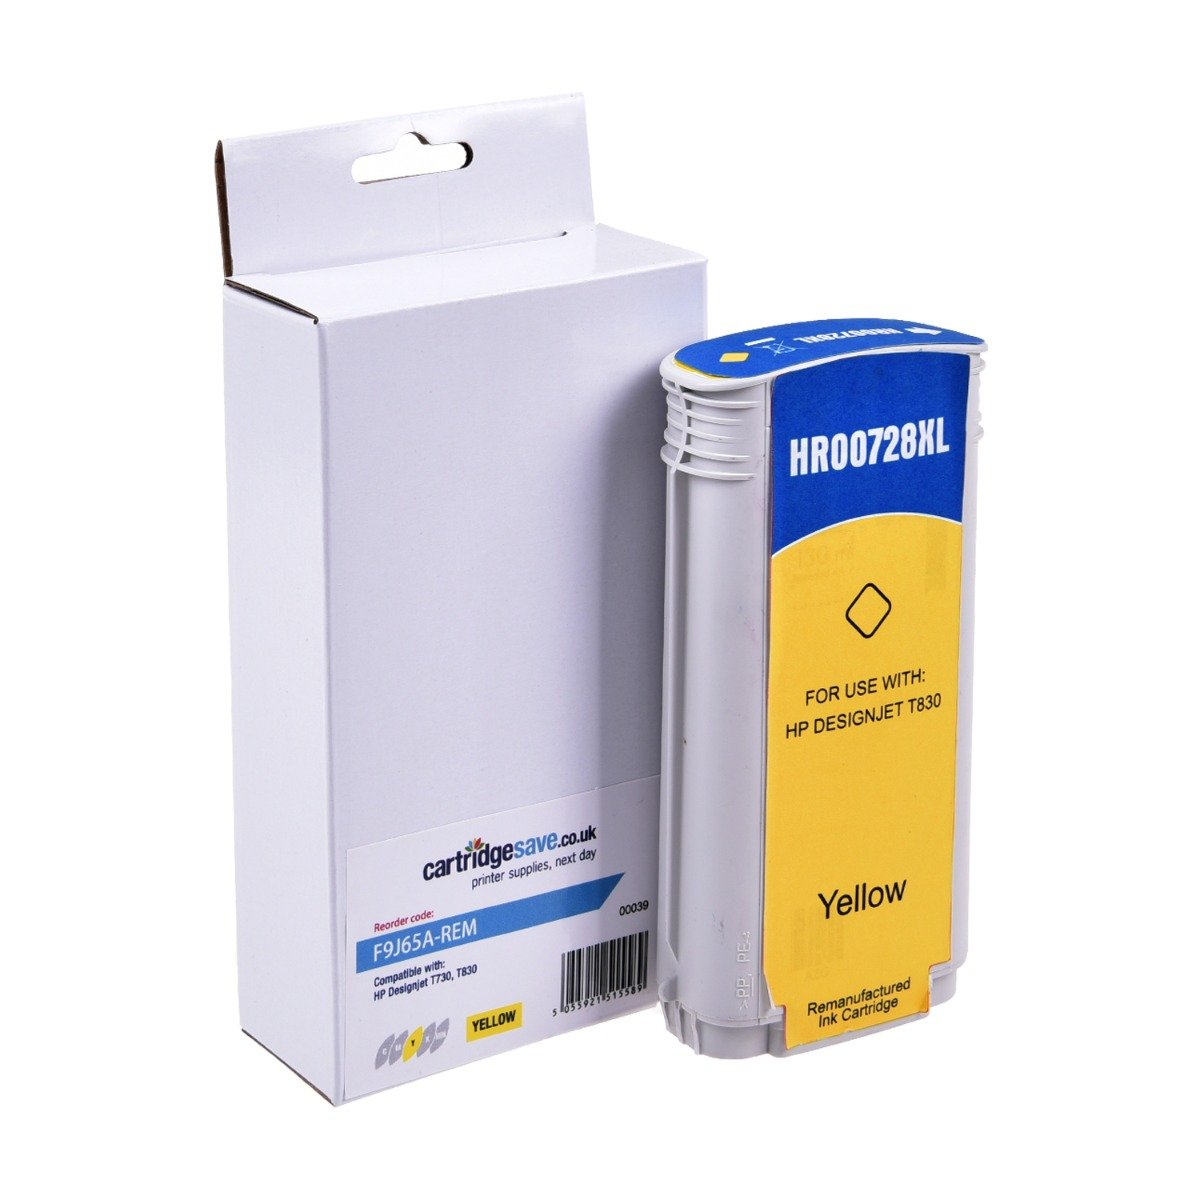 Compatible Yellow High Capacity HP 728 Ink Cartridge - (F9J65A)